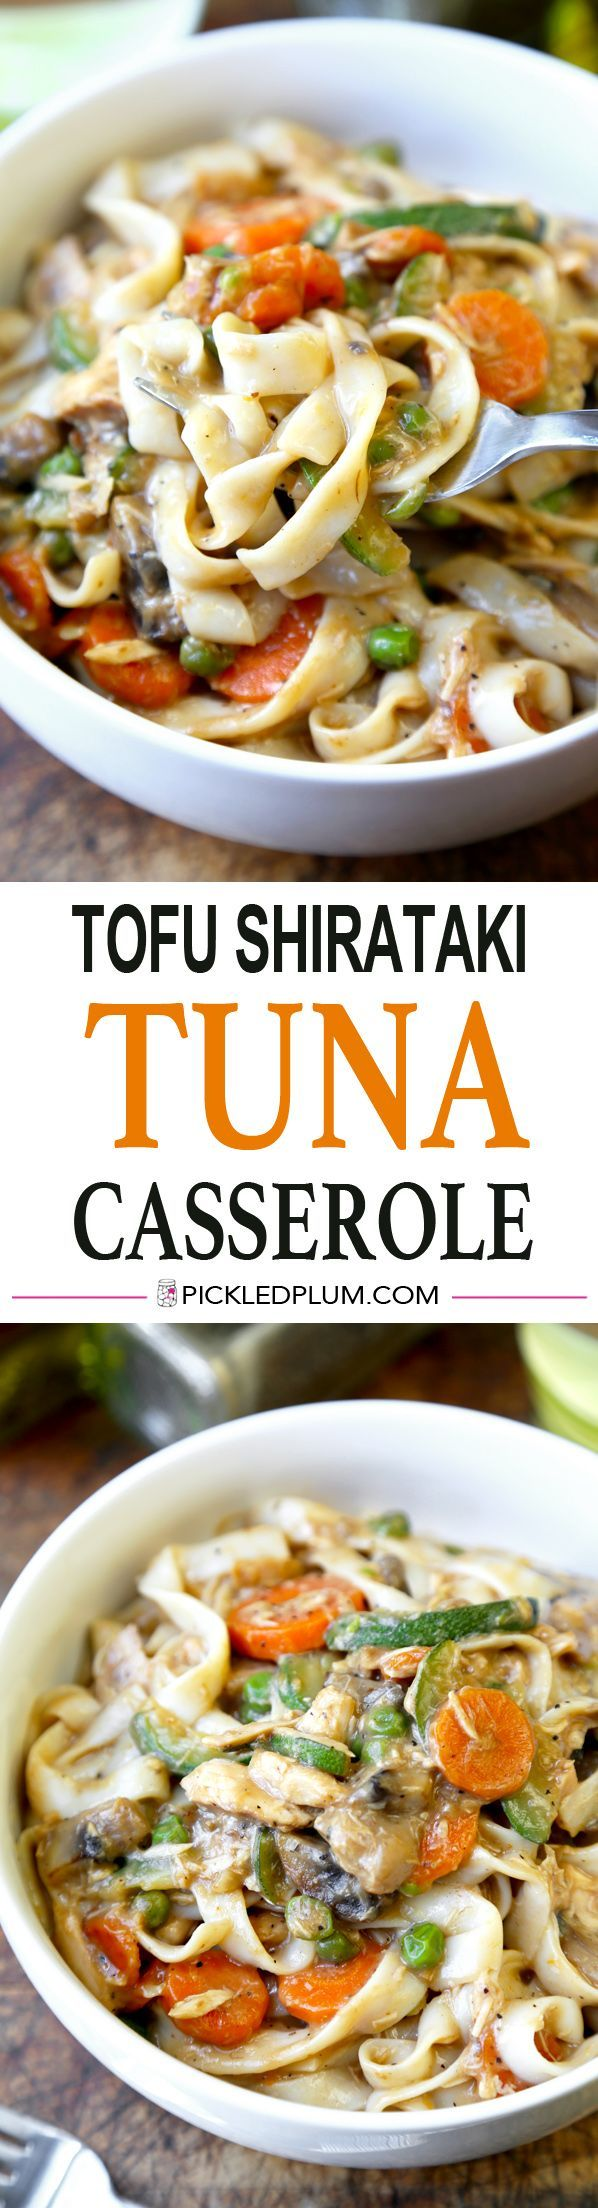 The healthiest tuna noodle casserole made with tofu shirataki noodles, low fat cream of mushroom soup, and plenty of vegetables! Healthy recipe that's also low in calories. | Pickled Plum